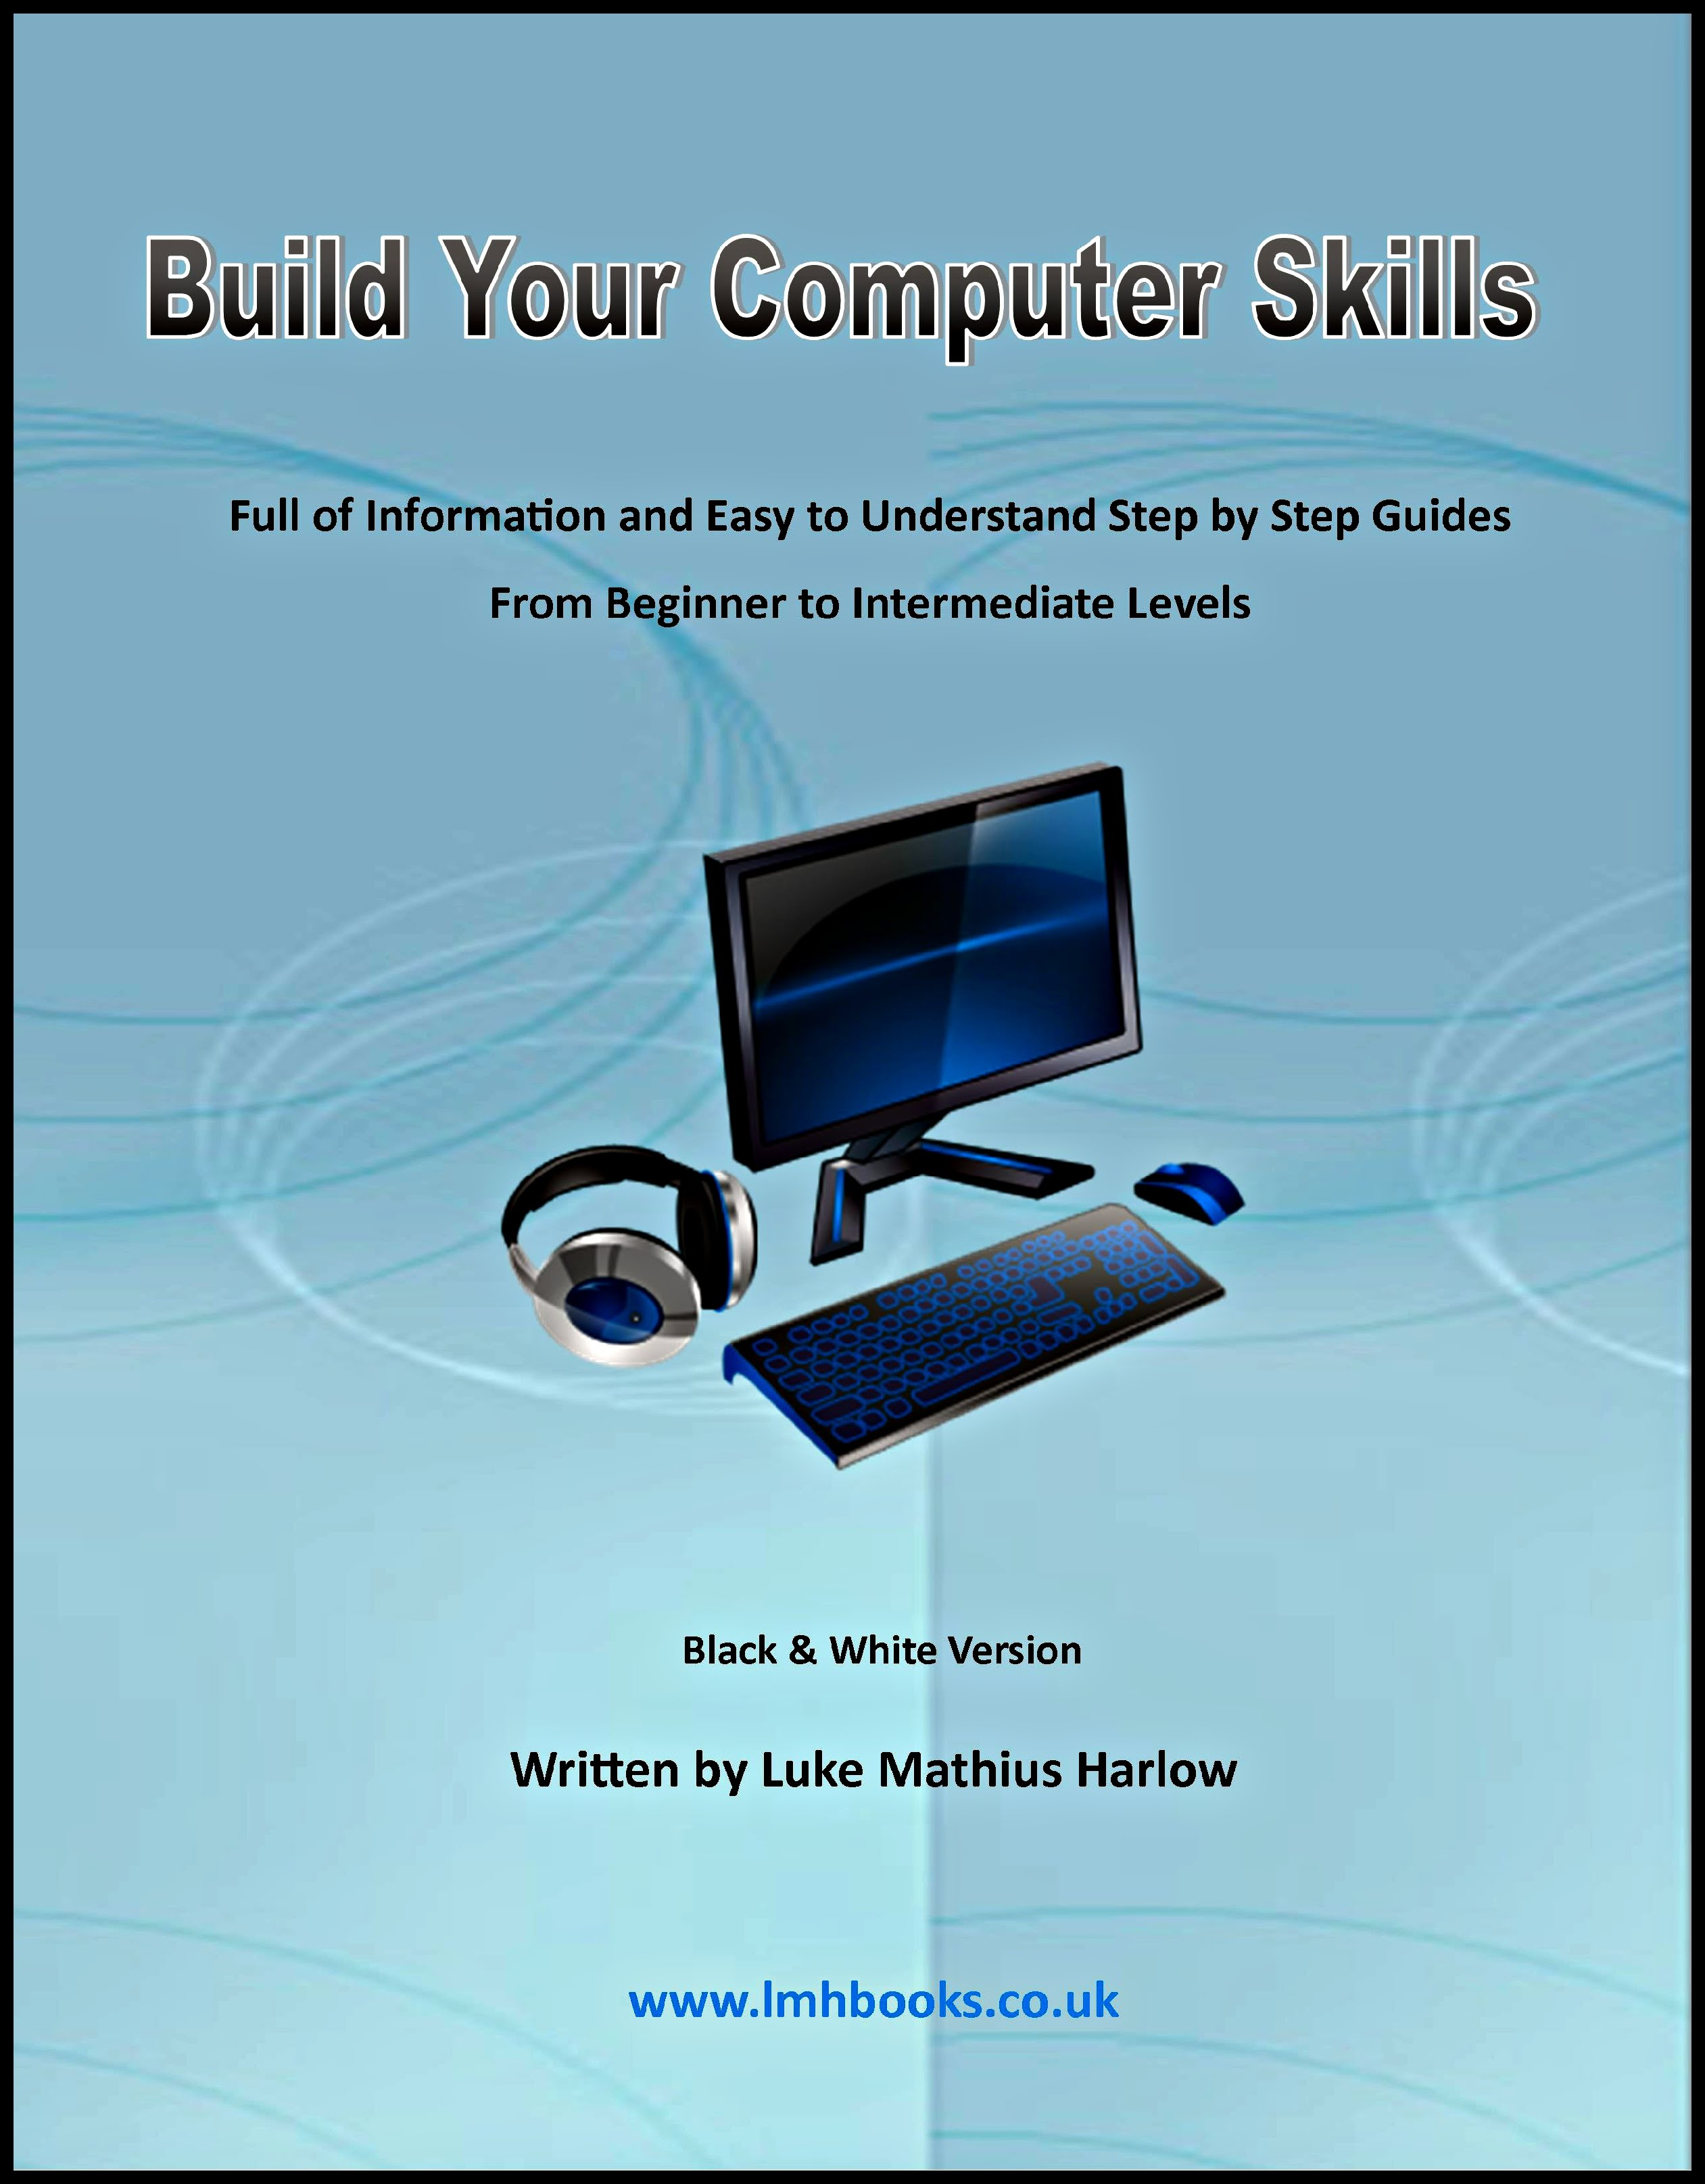 build your computer skills lmhbooks amazon co uk build computer